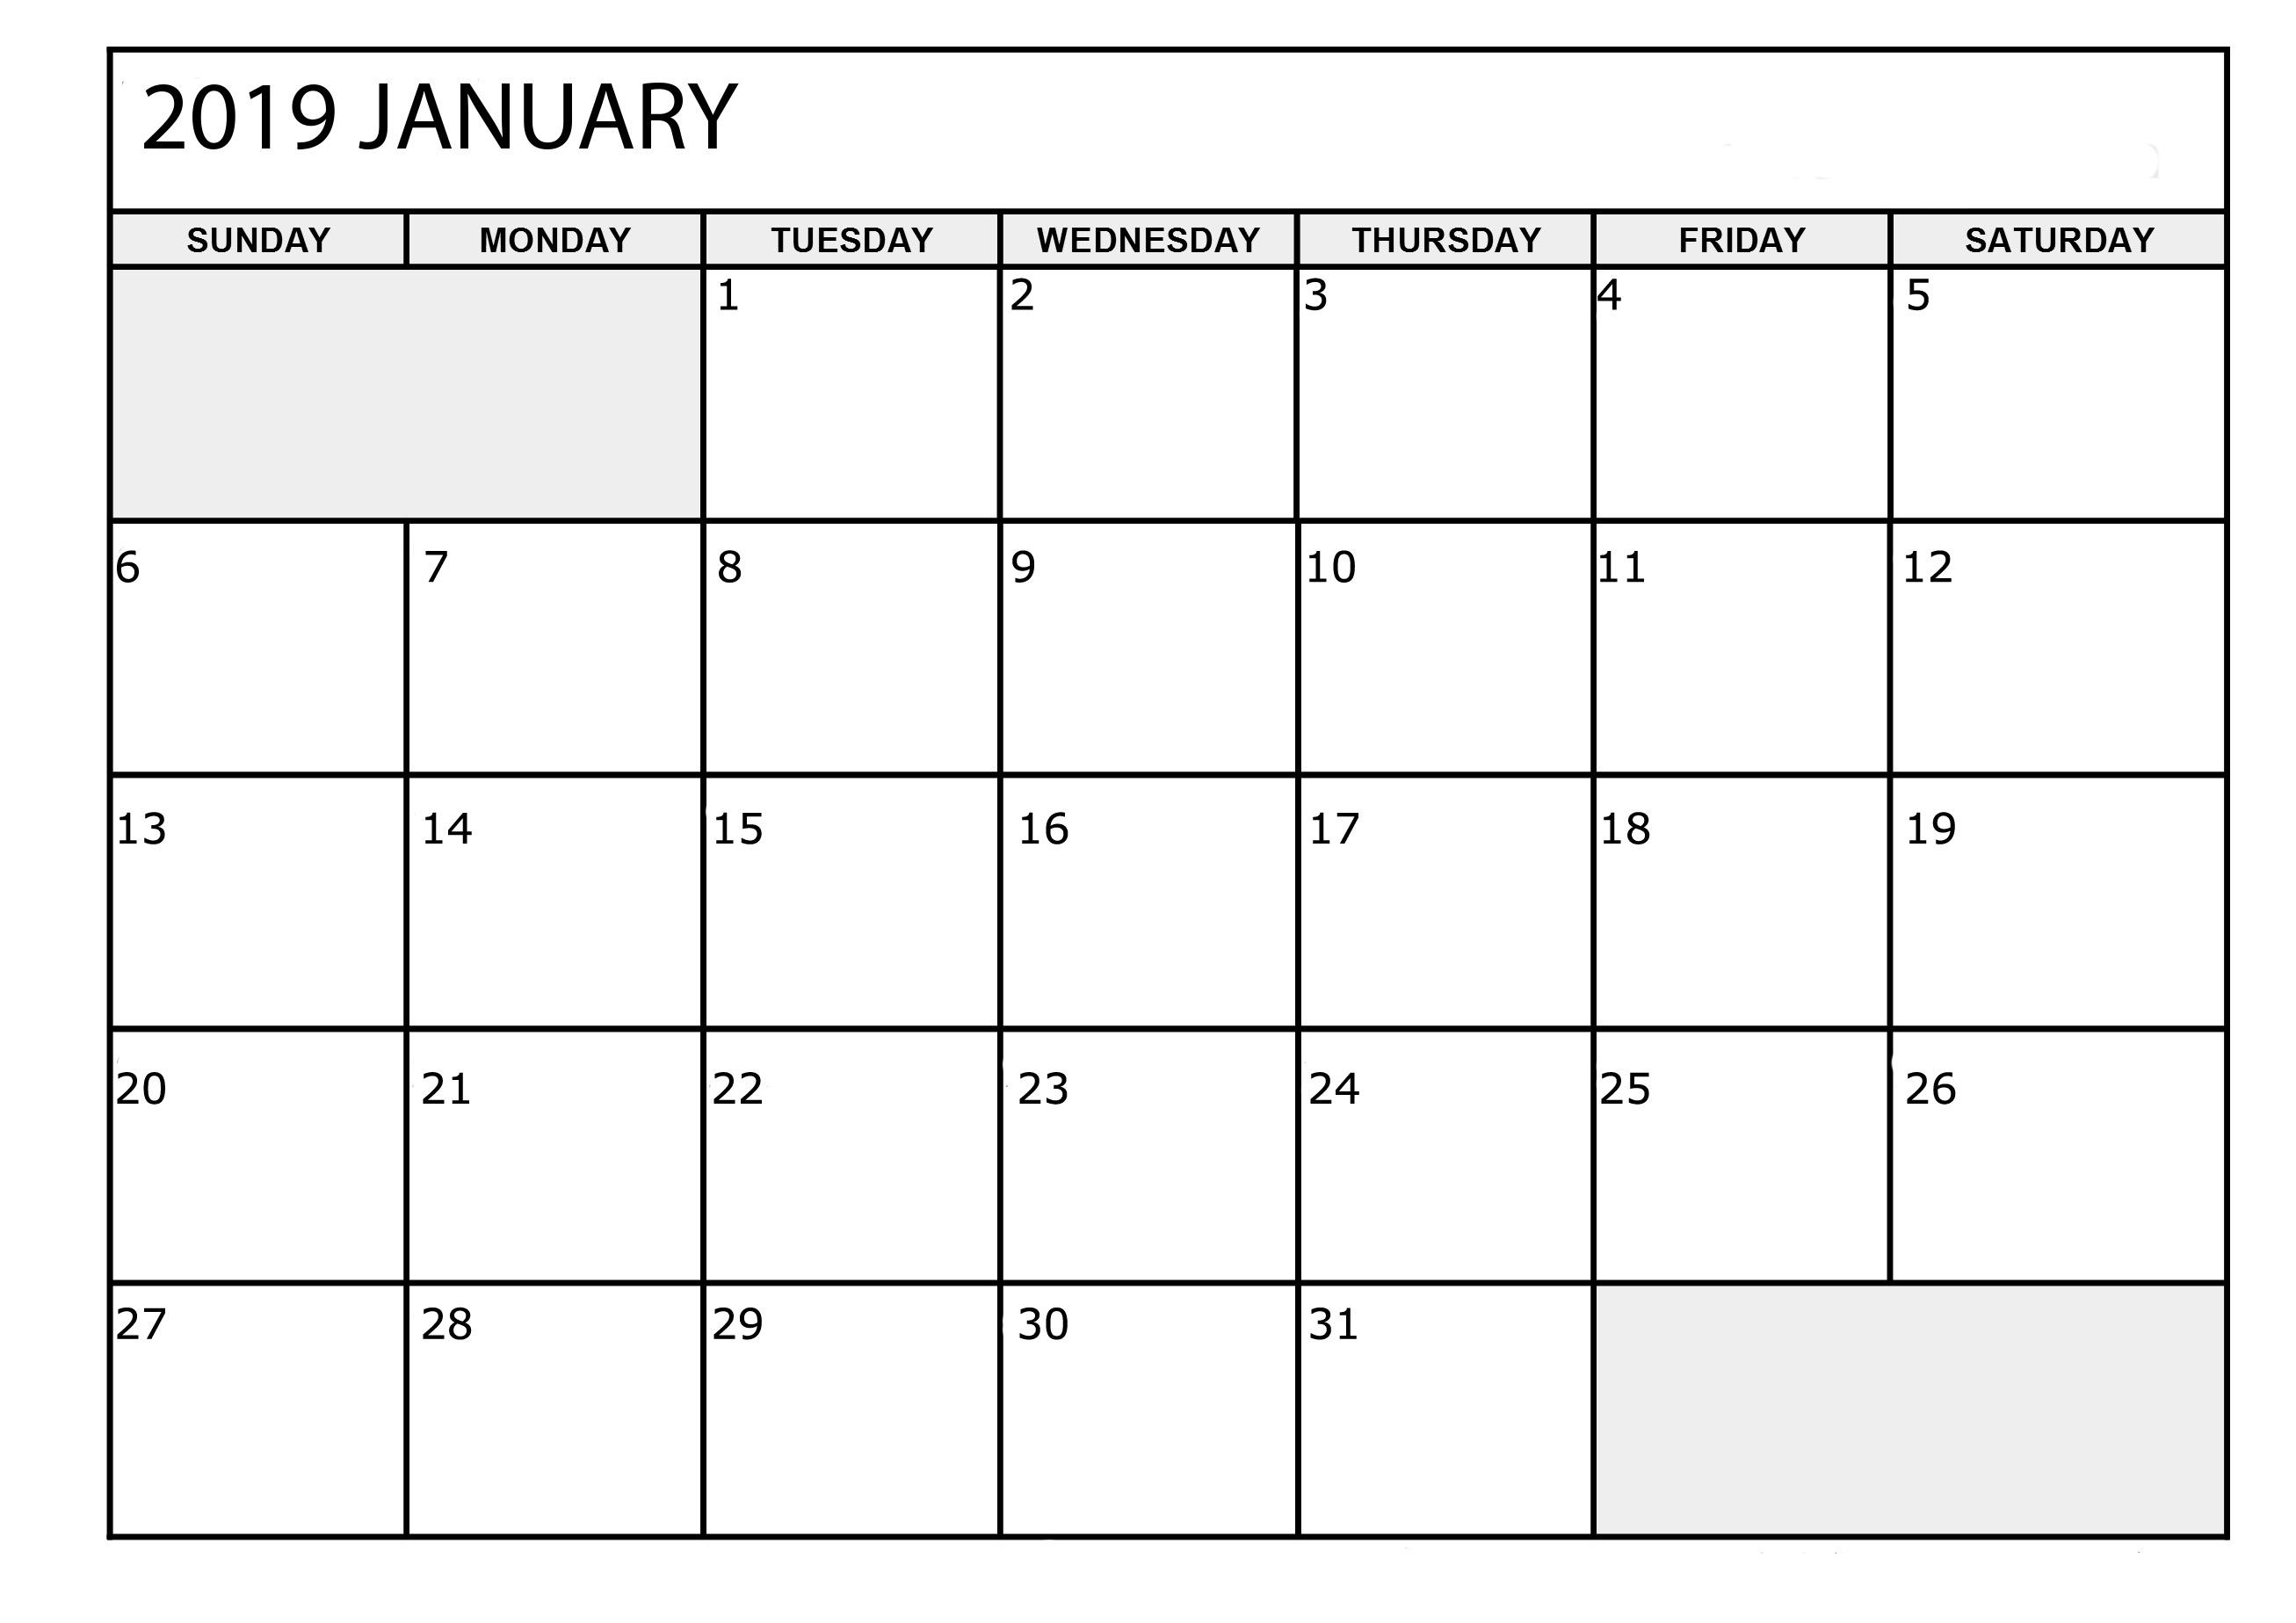 January 2019 Calendar Template Images Download